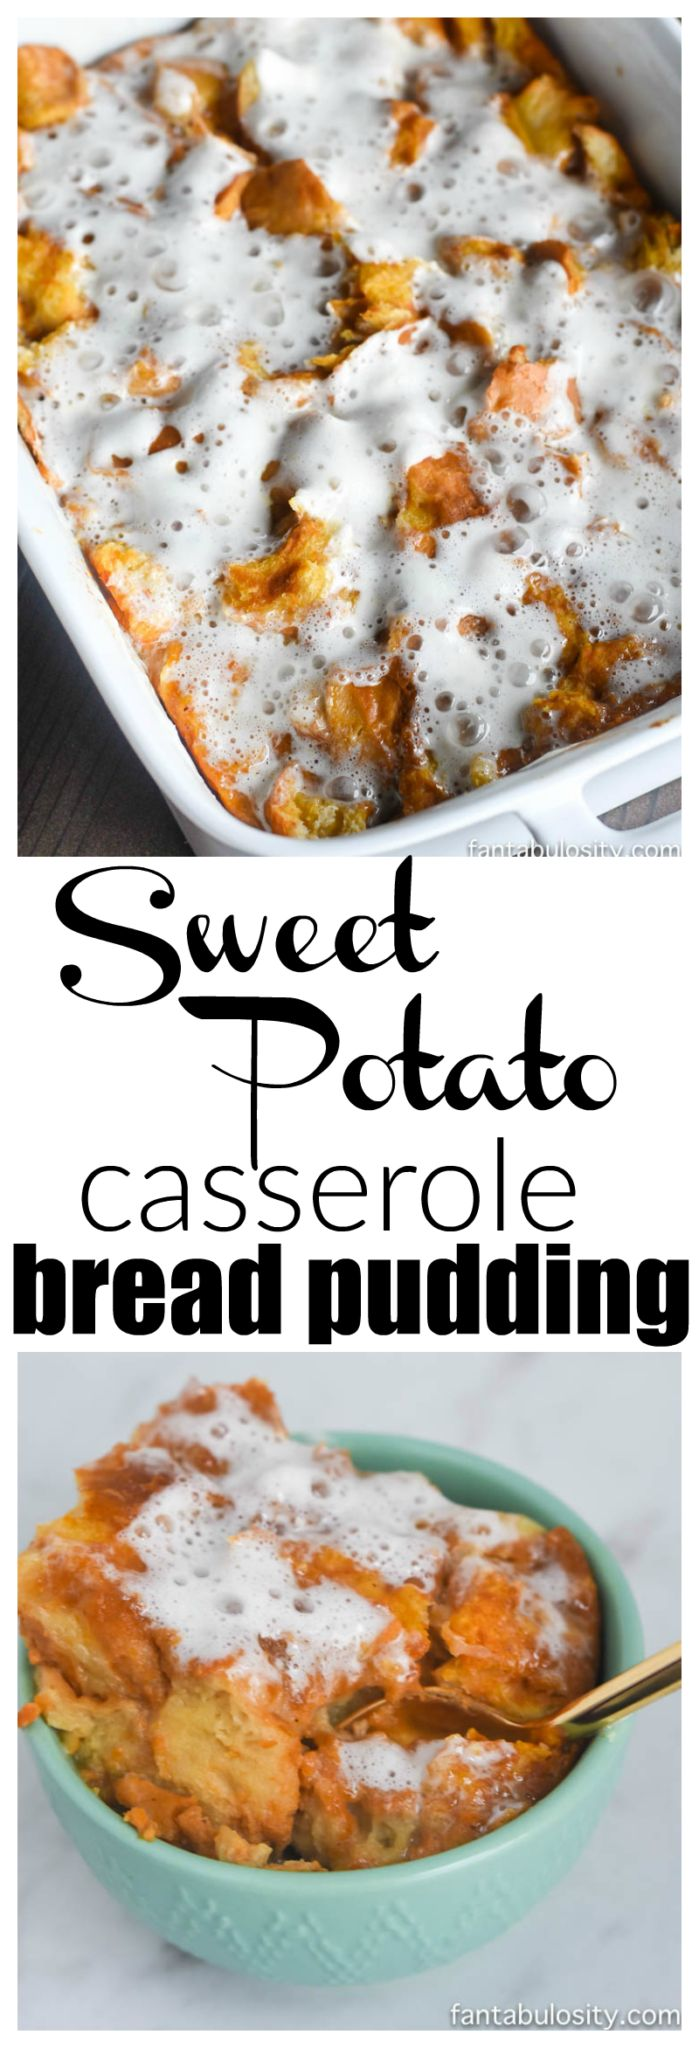 WHOA! This sounds amazing! Sweet Potato Casserole Bread Pudding Recipe